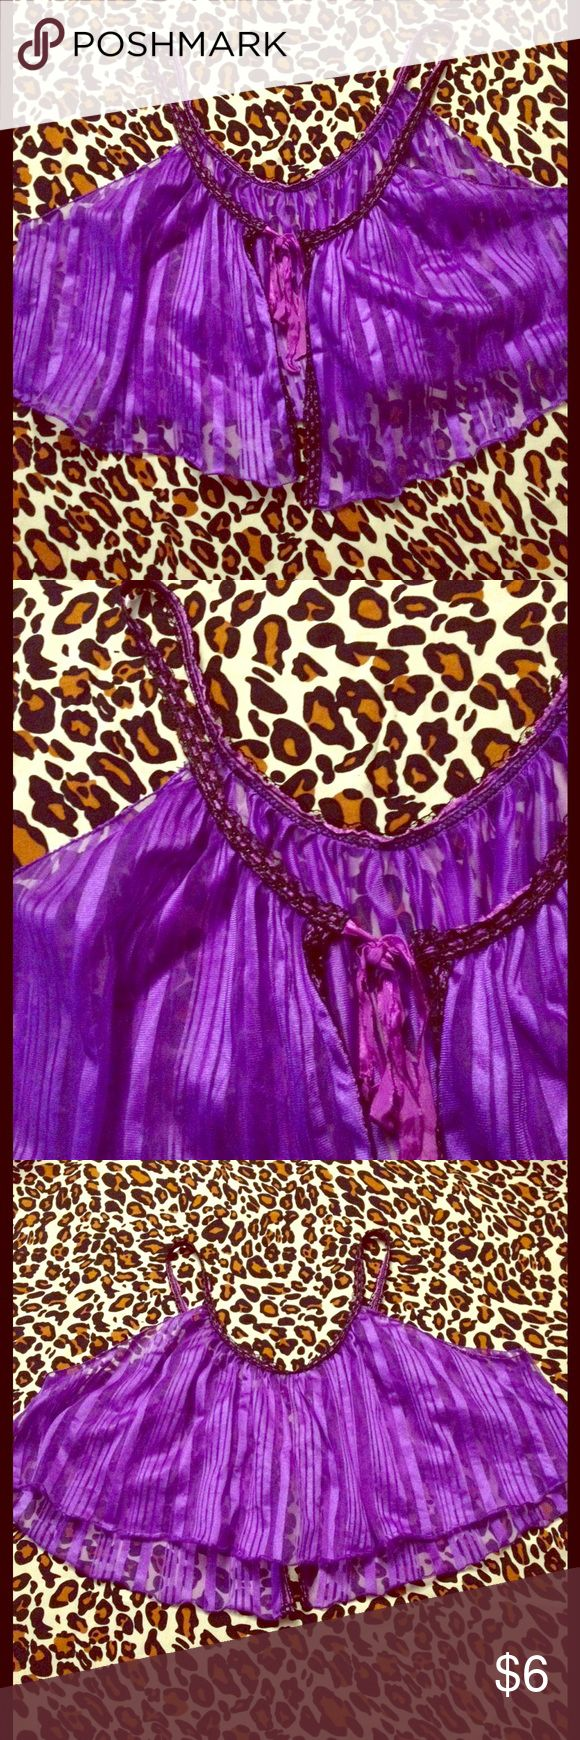 Vintage Purple Cropped Lingerie Top One size, sort of a trapeze style, only closes with the ribbon at neckline. Excellent Vintage Condition Vintage Intimates & Sleepwear Chemises & Slips